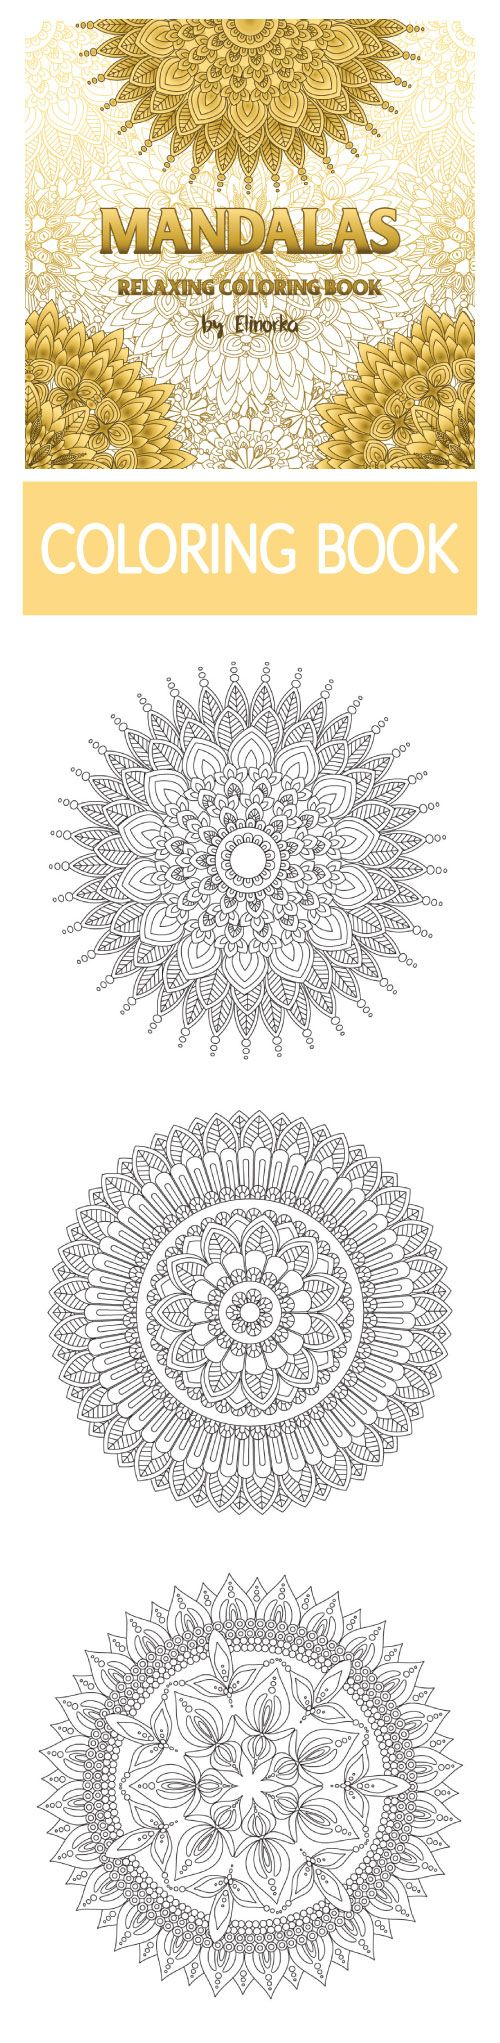 Mandalas: Relaxing Coloring Book for Adults. #mandala #coloring